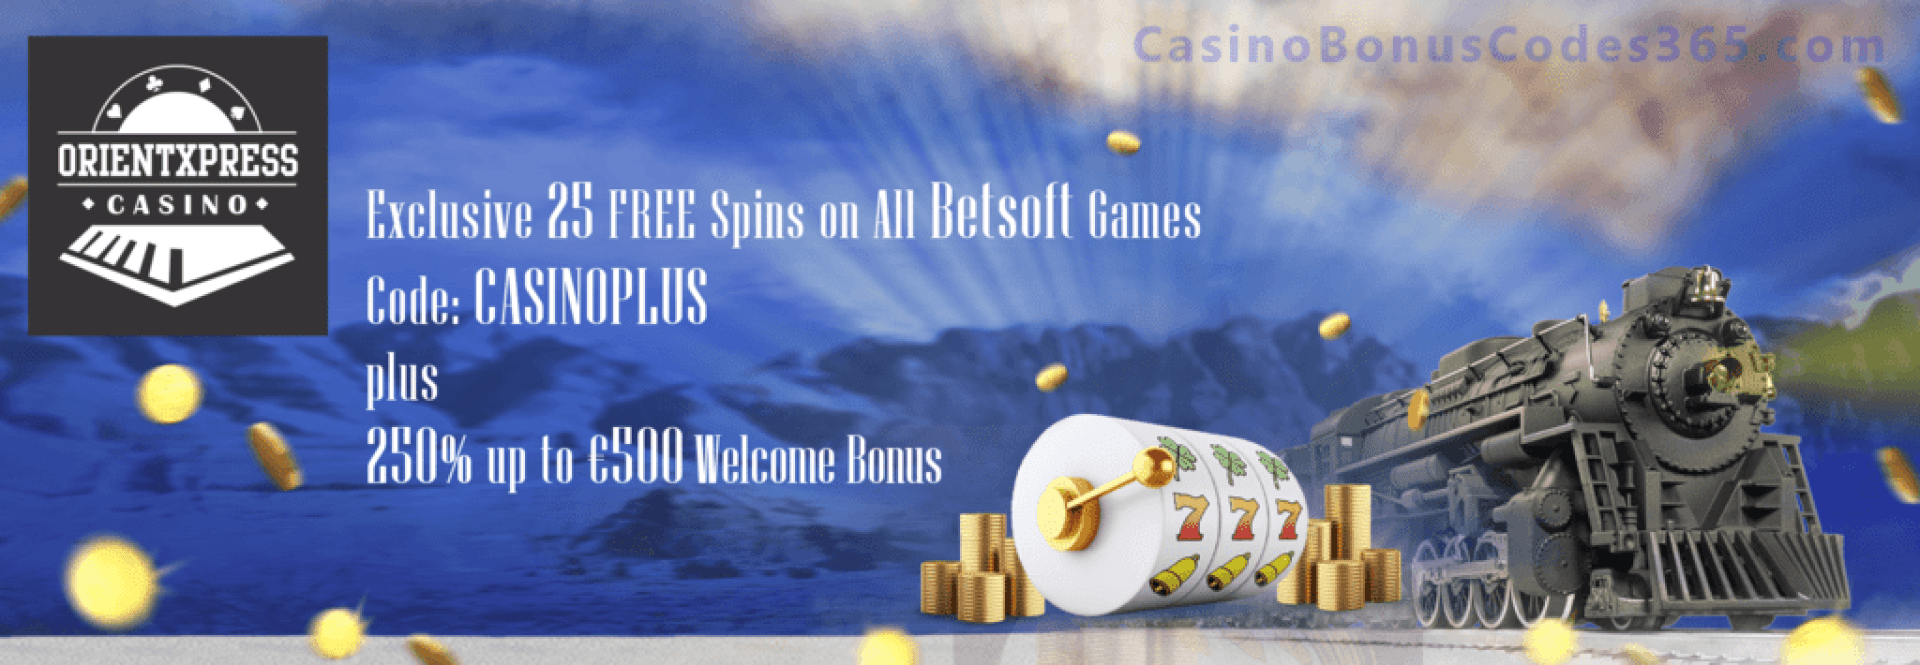 OrientXpress Casino Exclusive 25 FREE Spins plus 250% Match Welcome Bonus